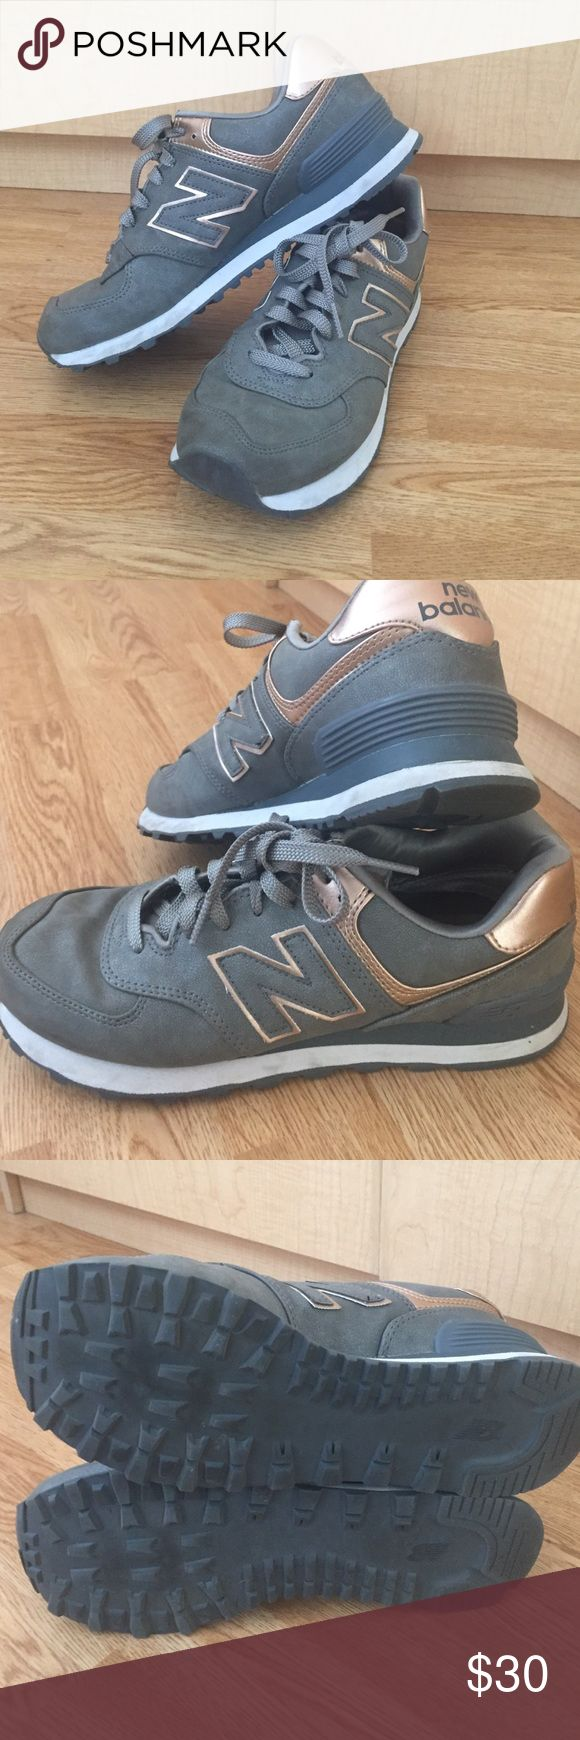 New Balance: 574 Sneakers// Leather grey sneakers with rose gold accents. Super comfortable, only worn a couple times! Price as listed! New Balance Shoes Sneakers